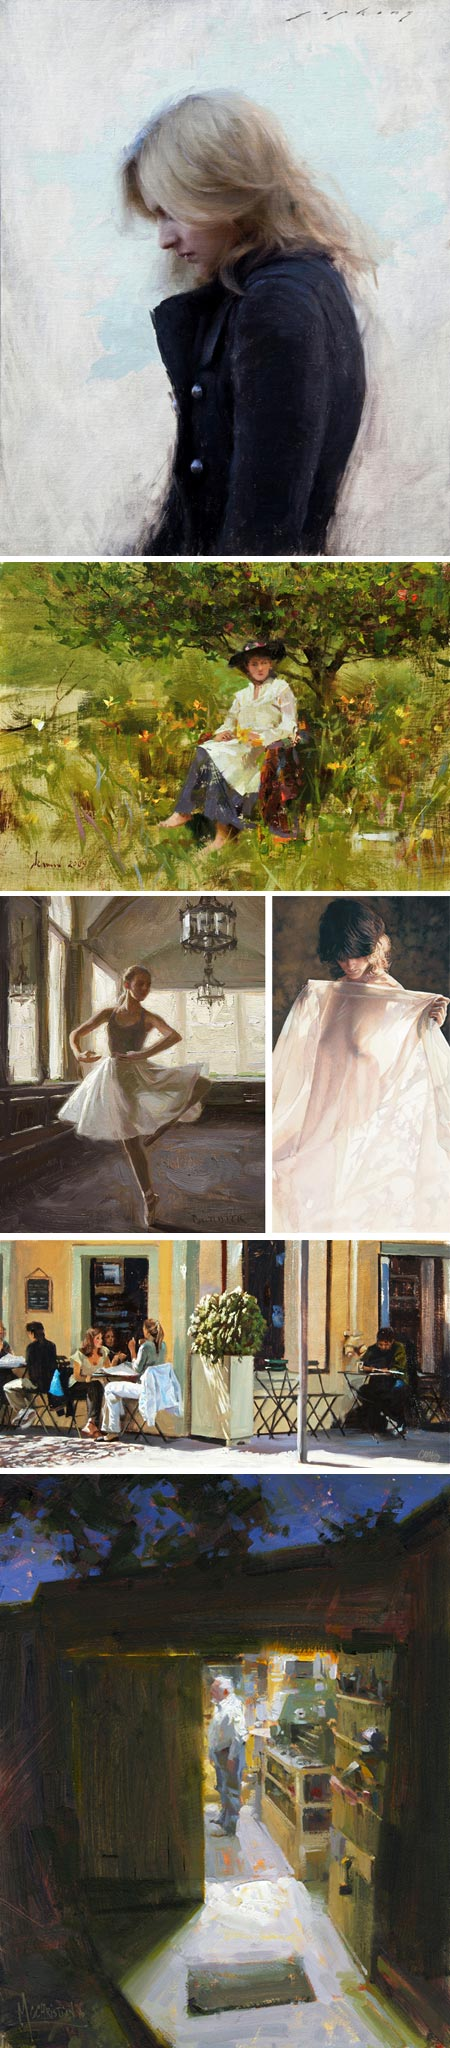 Waterhouse Gallery Great American Figurative Artists Exhibition 2010: Jeremy Lipking, Richard Schmid, Scott Burdick, Steve Hanks, Craig Nelson, Jennifer McChristian